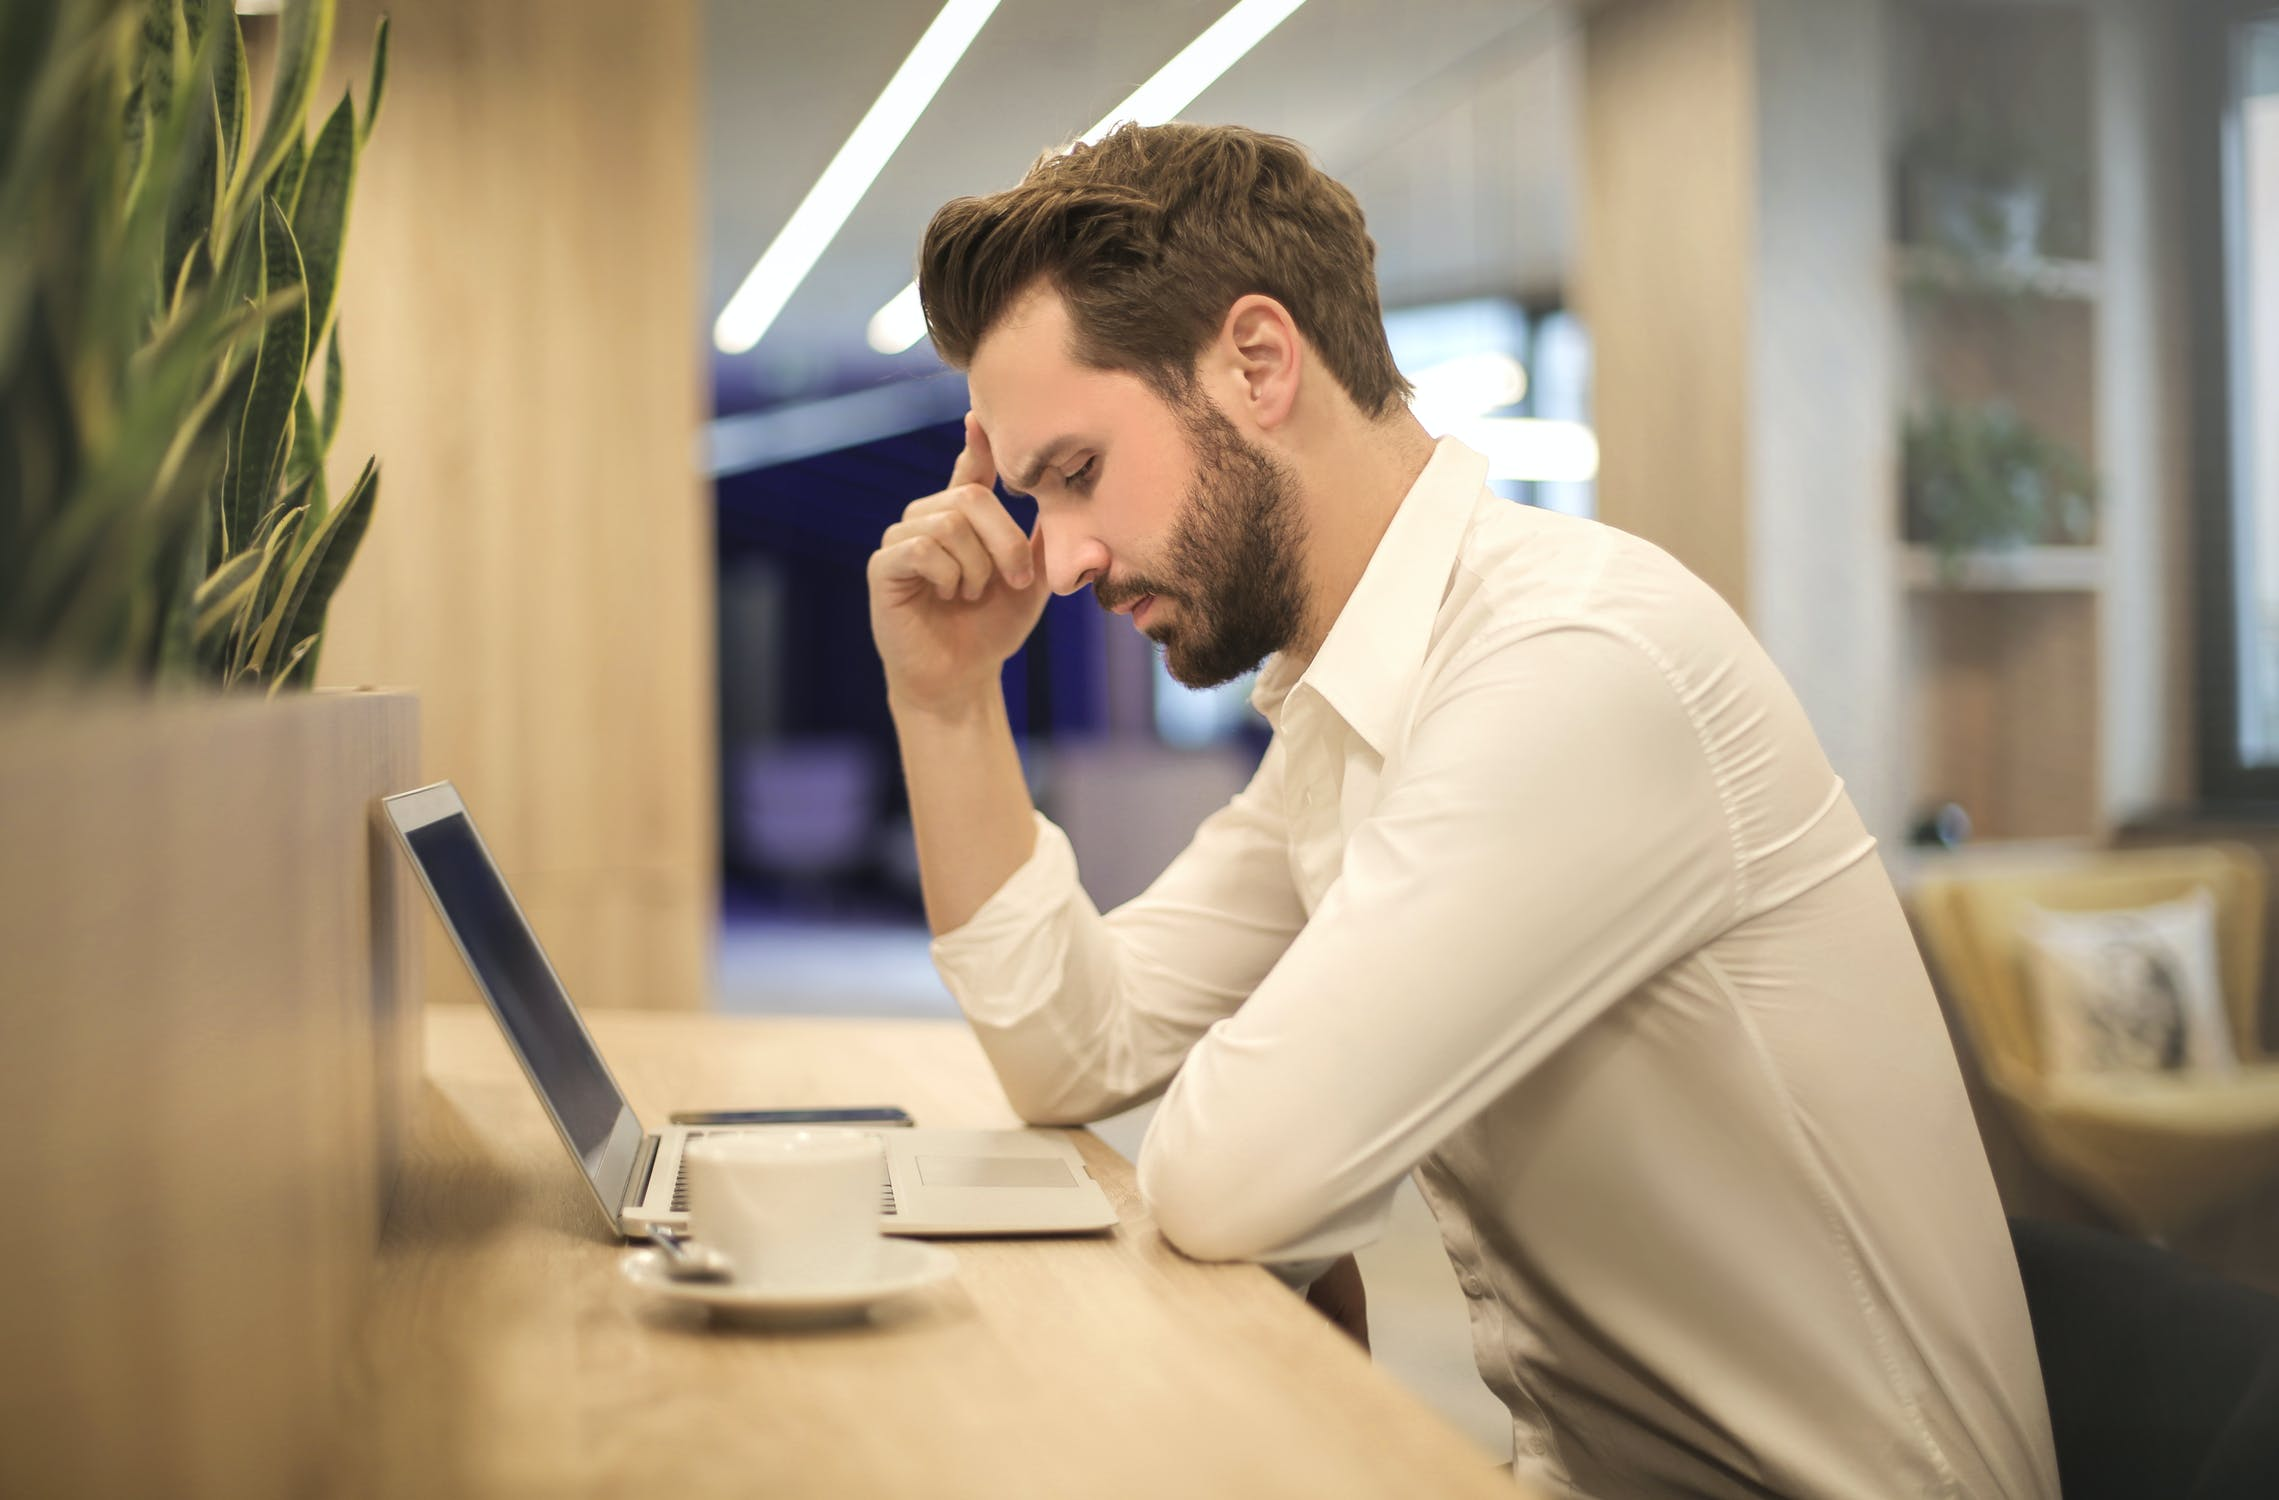 Individual stressed working over laptop due to unfair prejudice claims.